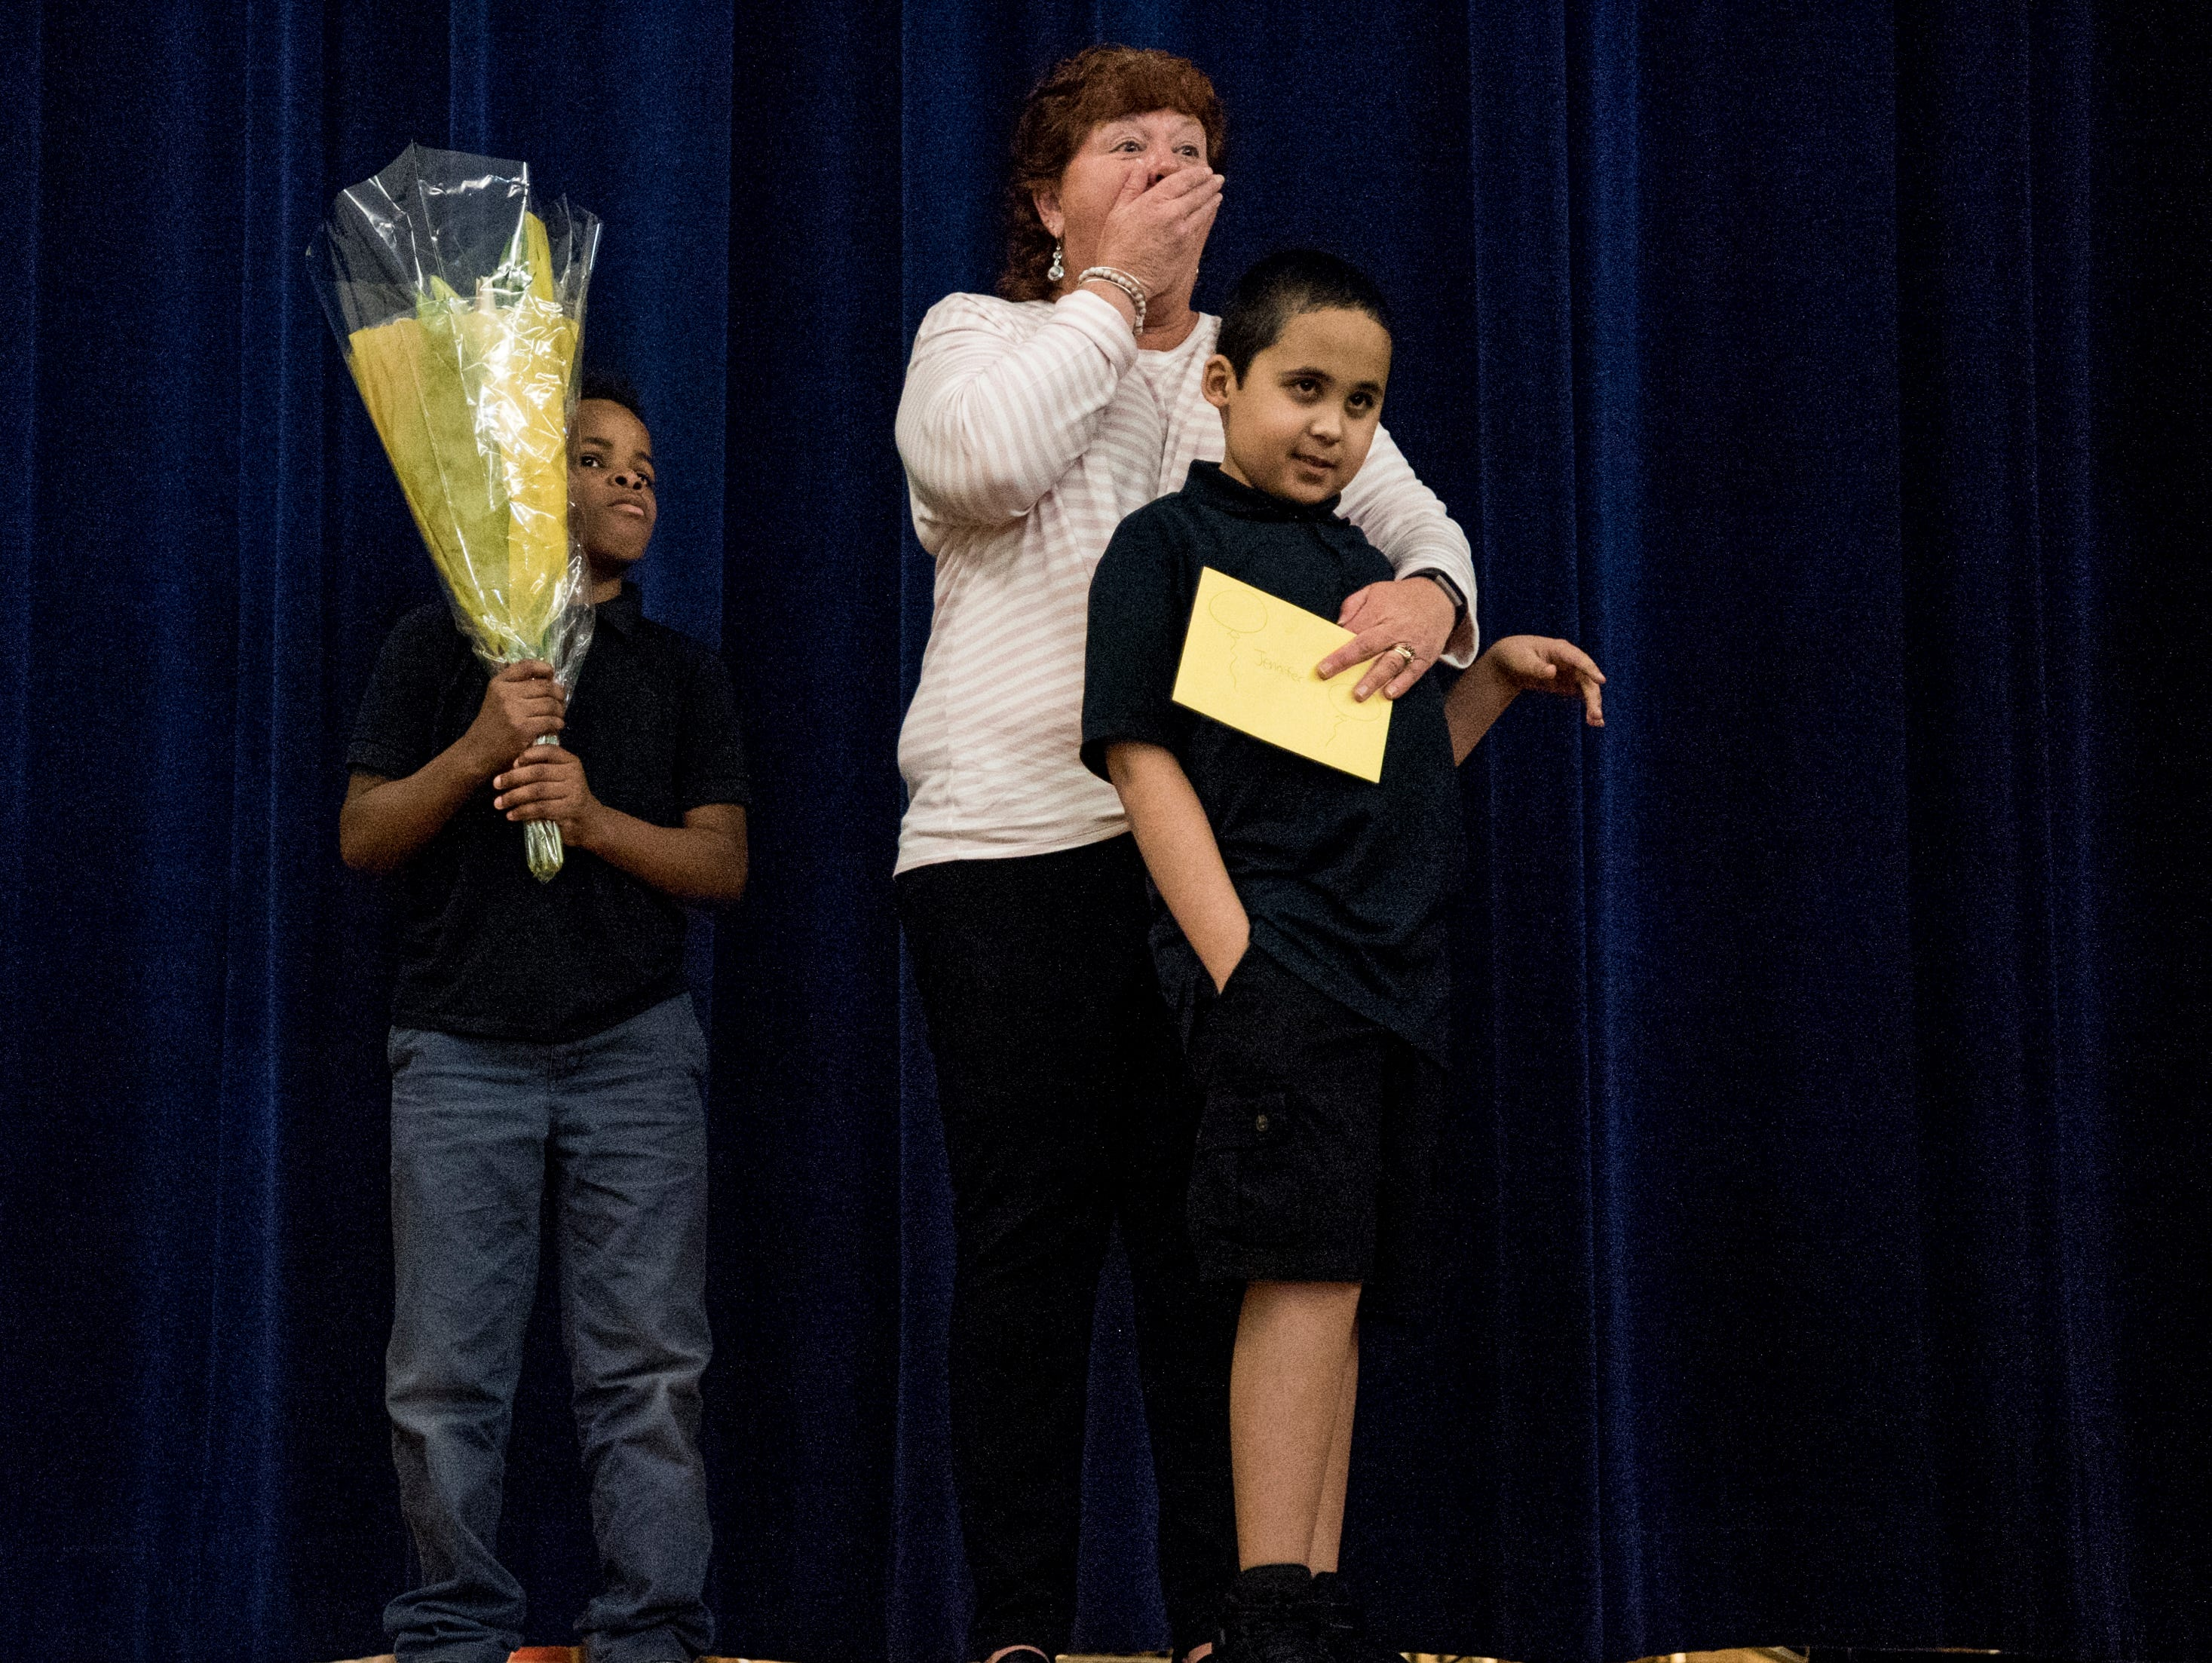 Jennifer L. Stoll, center, reacts to seeing several of her friends sitting in the front row of the auditorium as she is joined by two of her students Jakorvyan Heathers, left, and Darren Hooks, right, on stage during the awards assembly at Washington Middle School in Evansville, Ind., Wednesday, April 10, 2019. Stoll, who works in special education, was named the 2019 Middle School Teacher of the Year award.